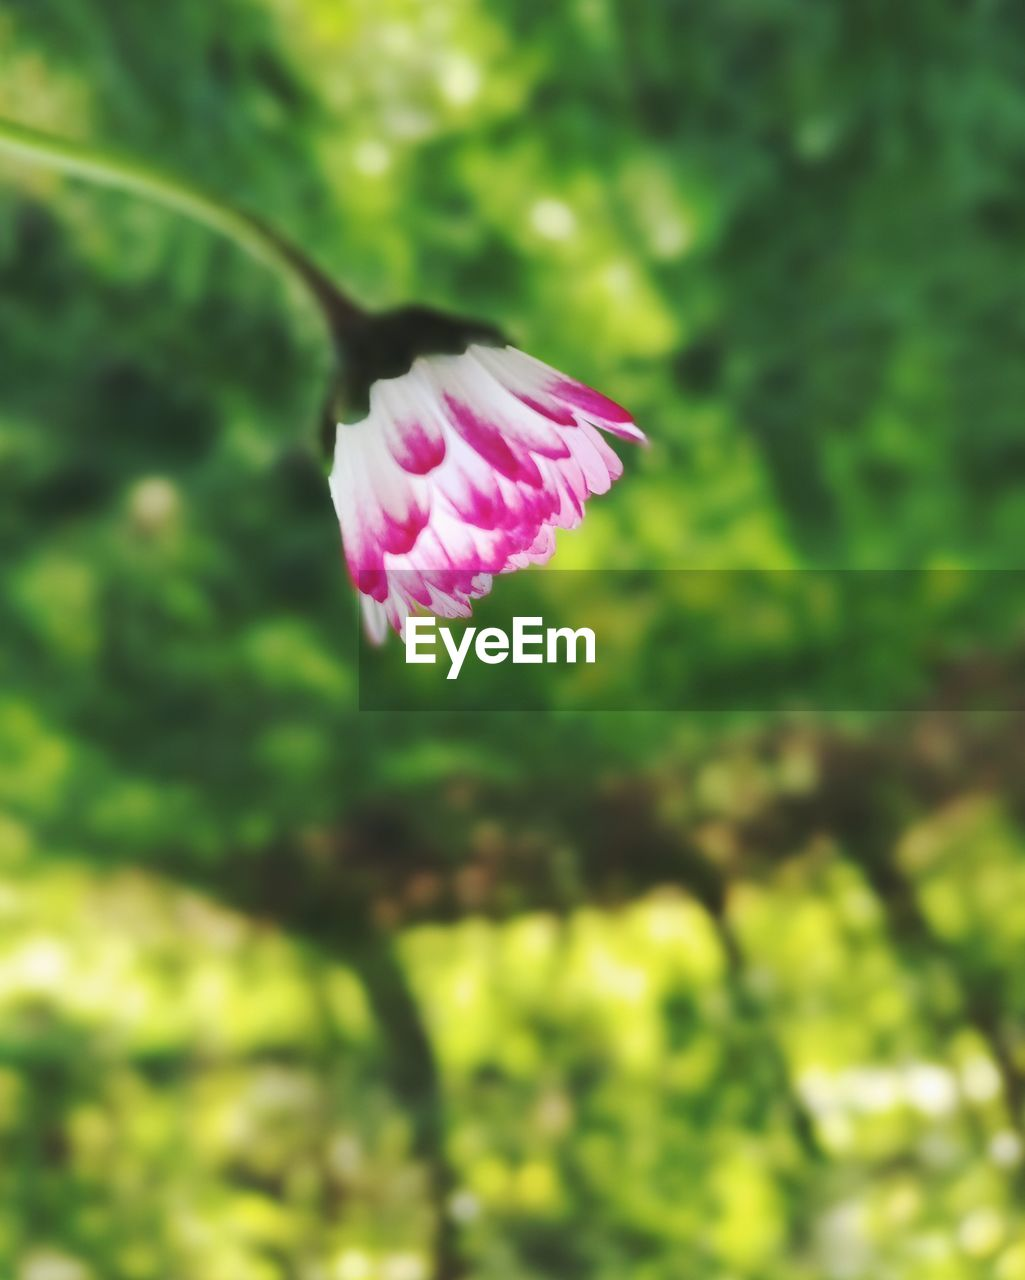 flower, fragility, nature, petal, beauty in nature, growth, freshness, flower head, pink color, focus on foreground, green color, plant, outdoors, no people, day, close-up, blooming